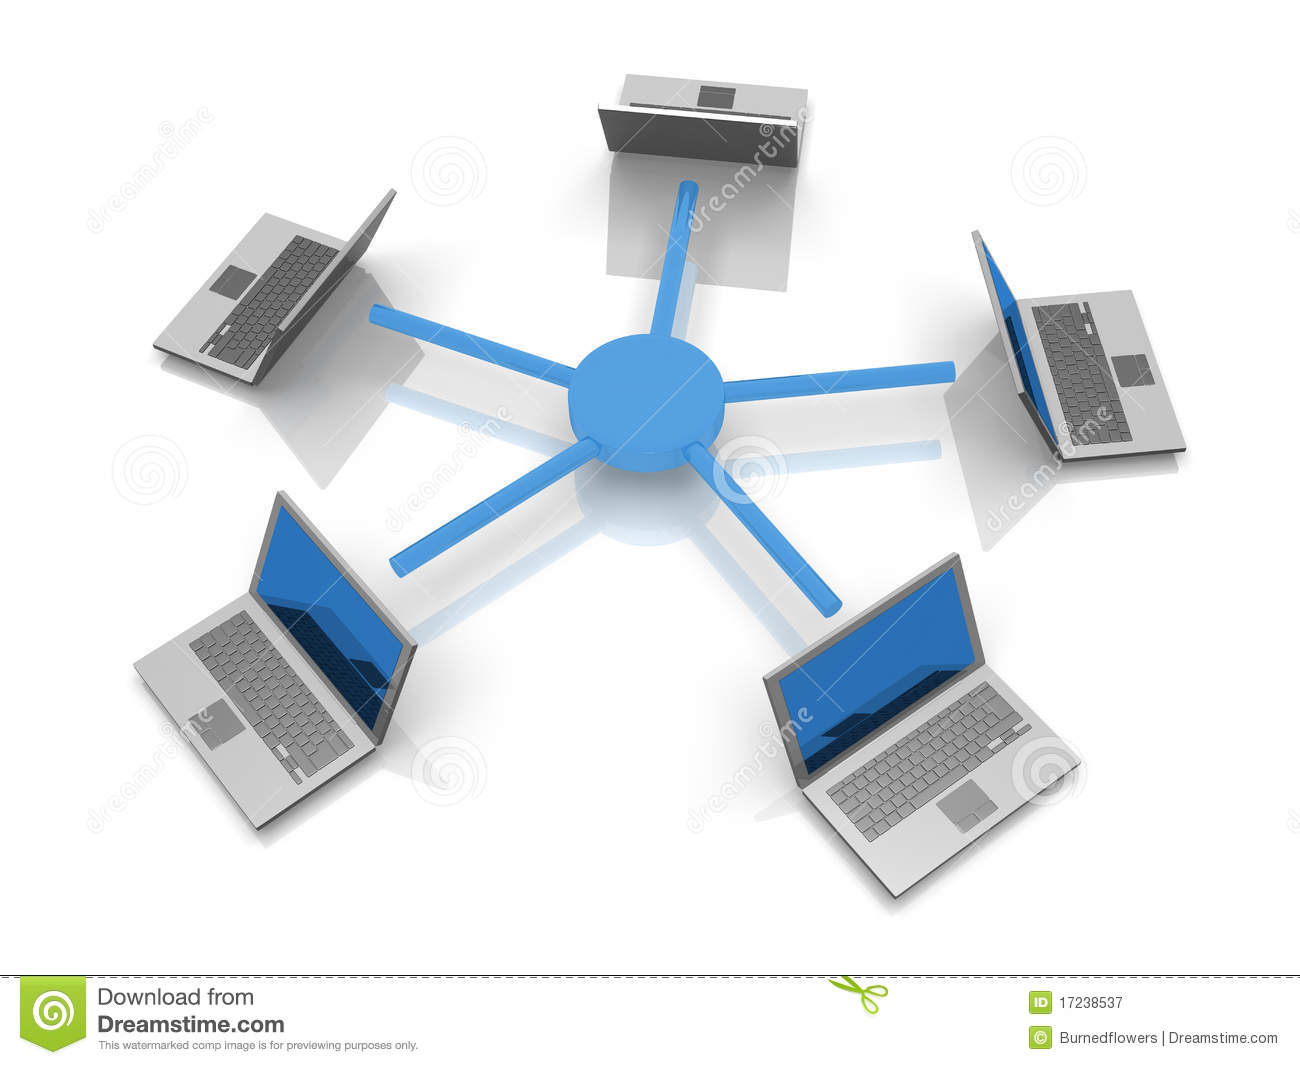 ... Topology With Laptops Royalty Free Stock Photography - Image: 17238537